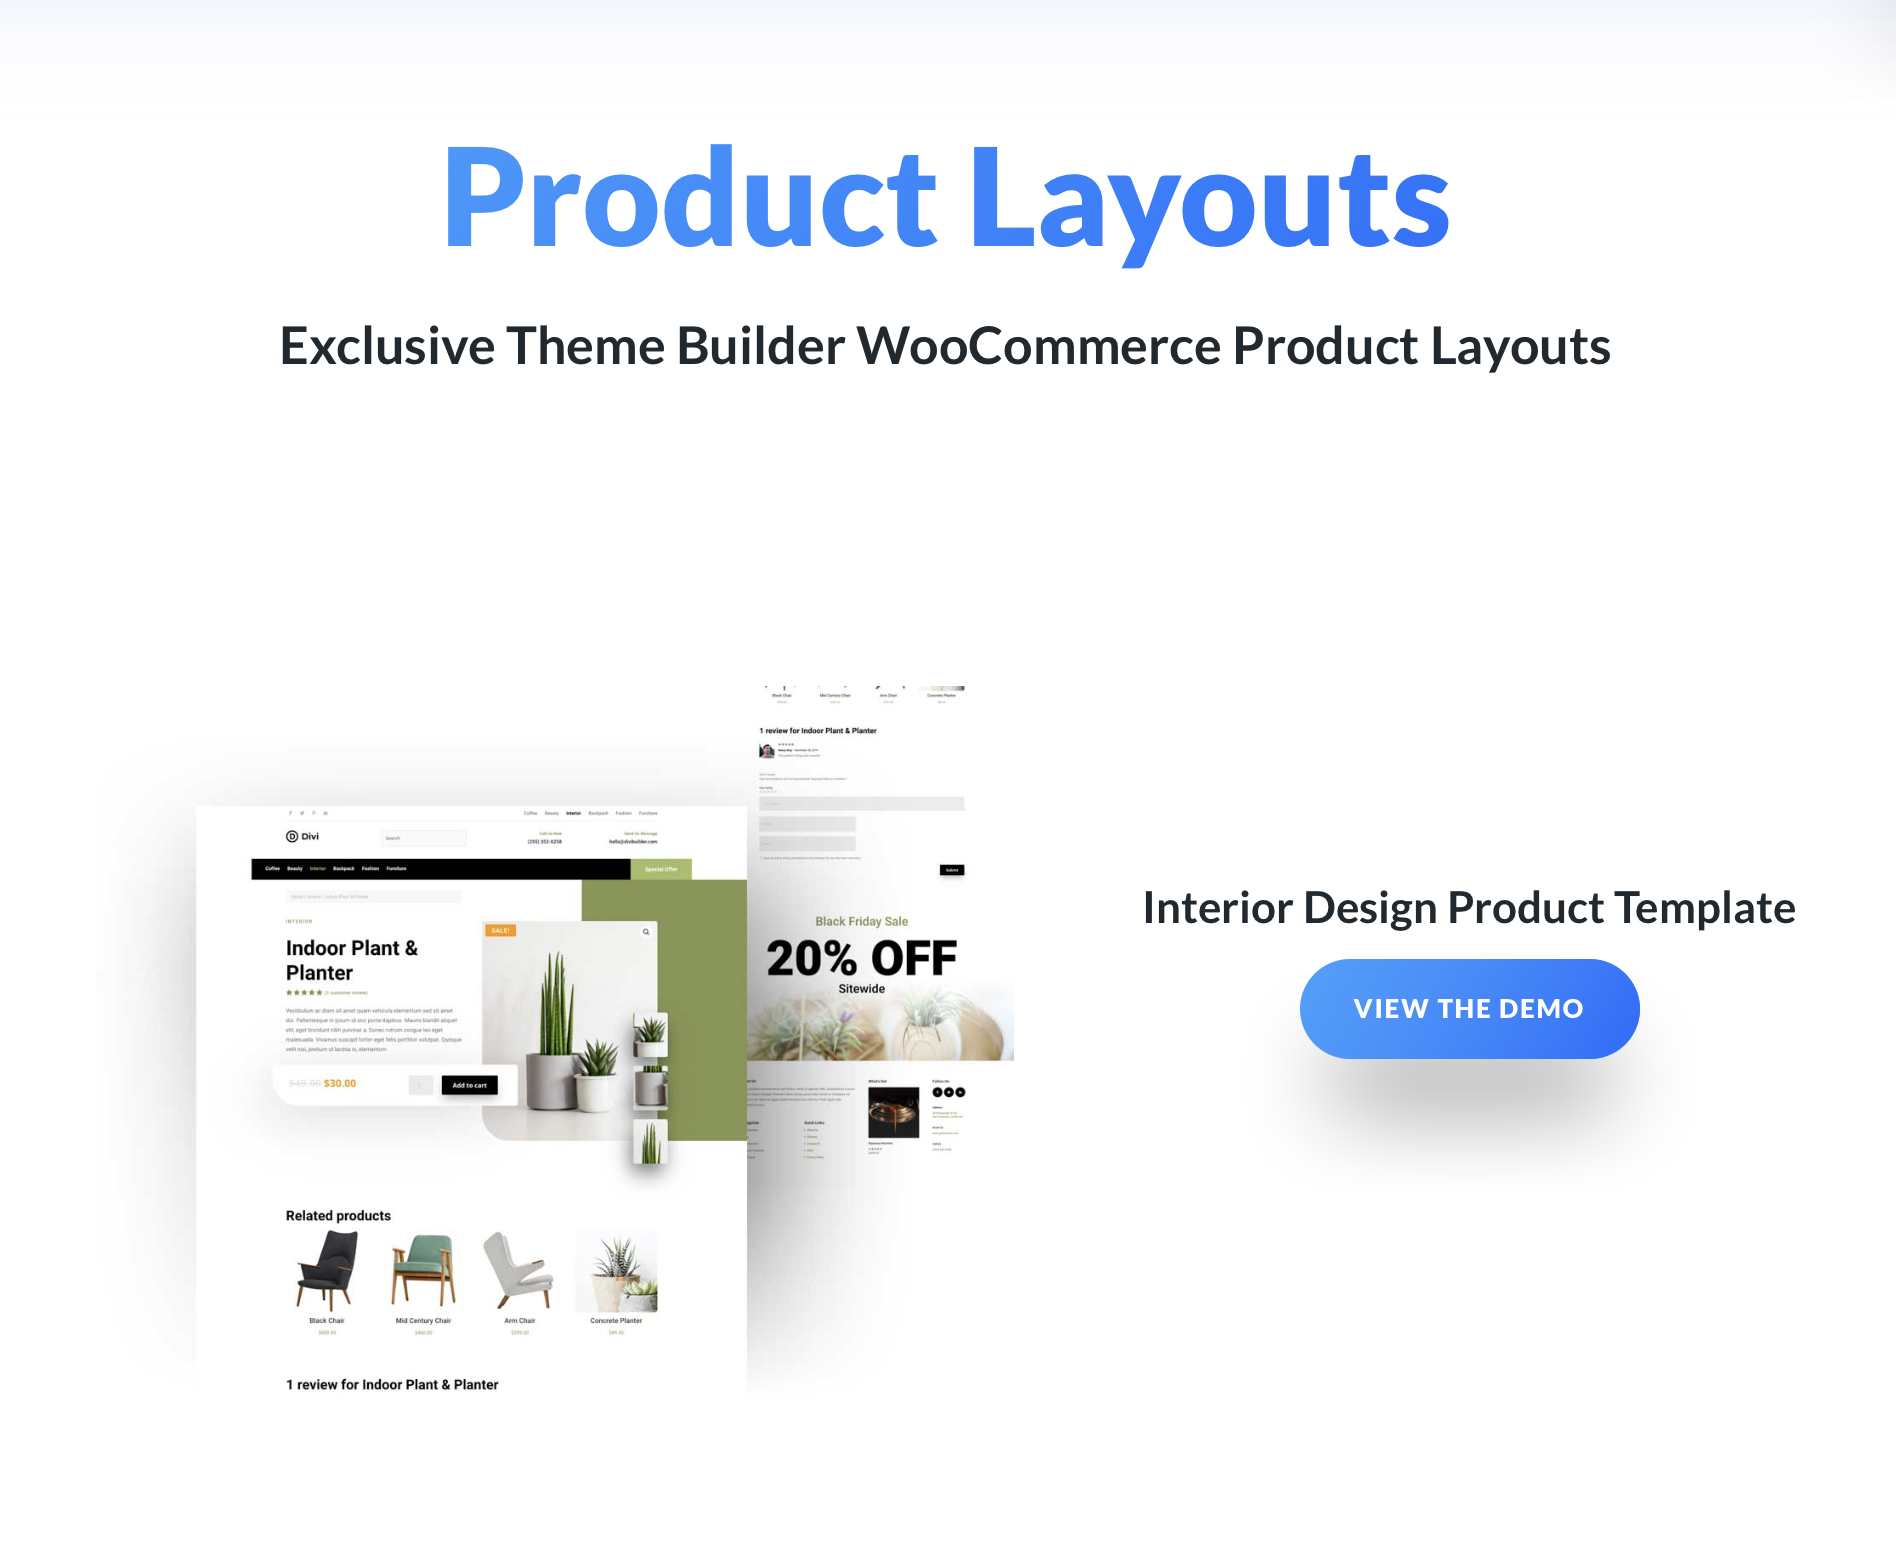 Download WOOCOMMERCE PRODUCT LAYOUT PACK